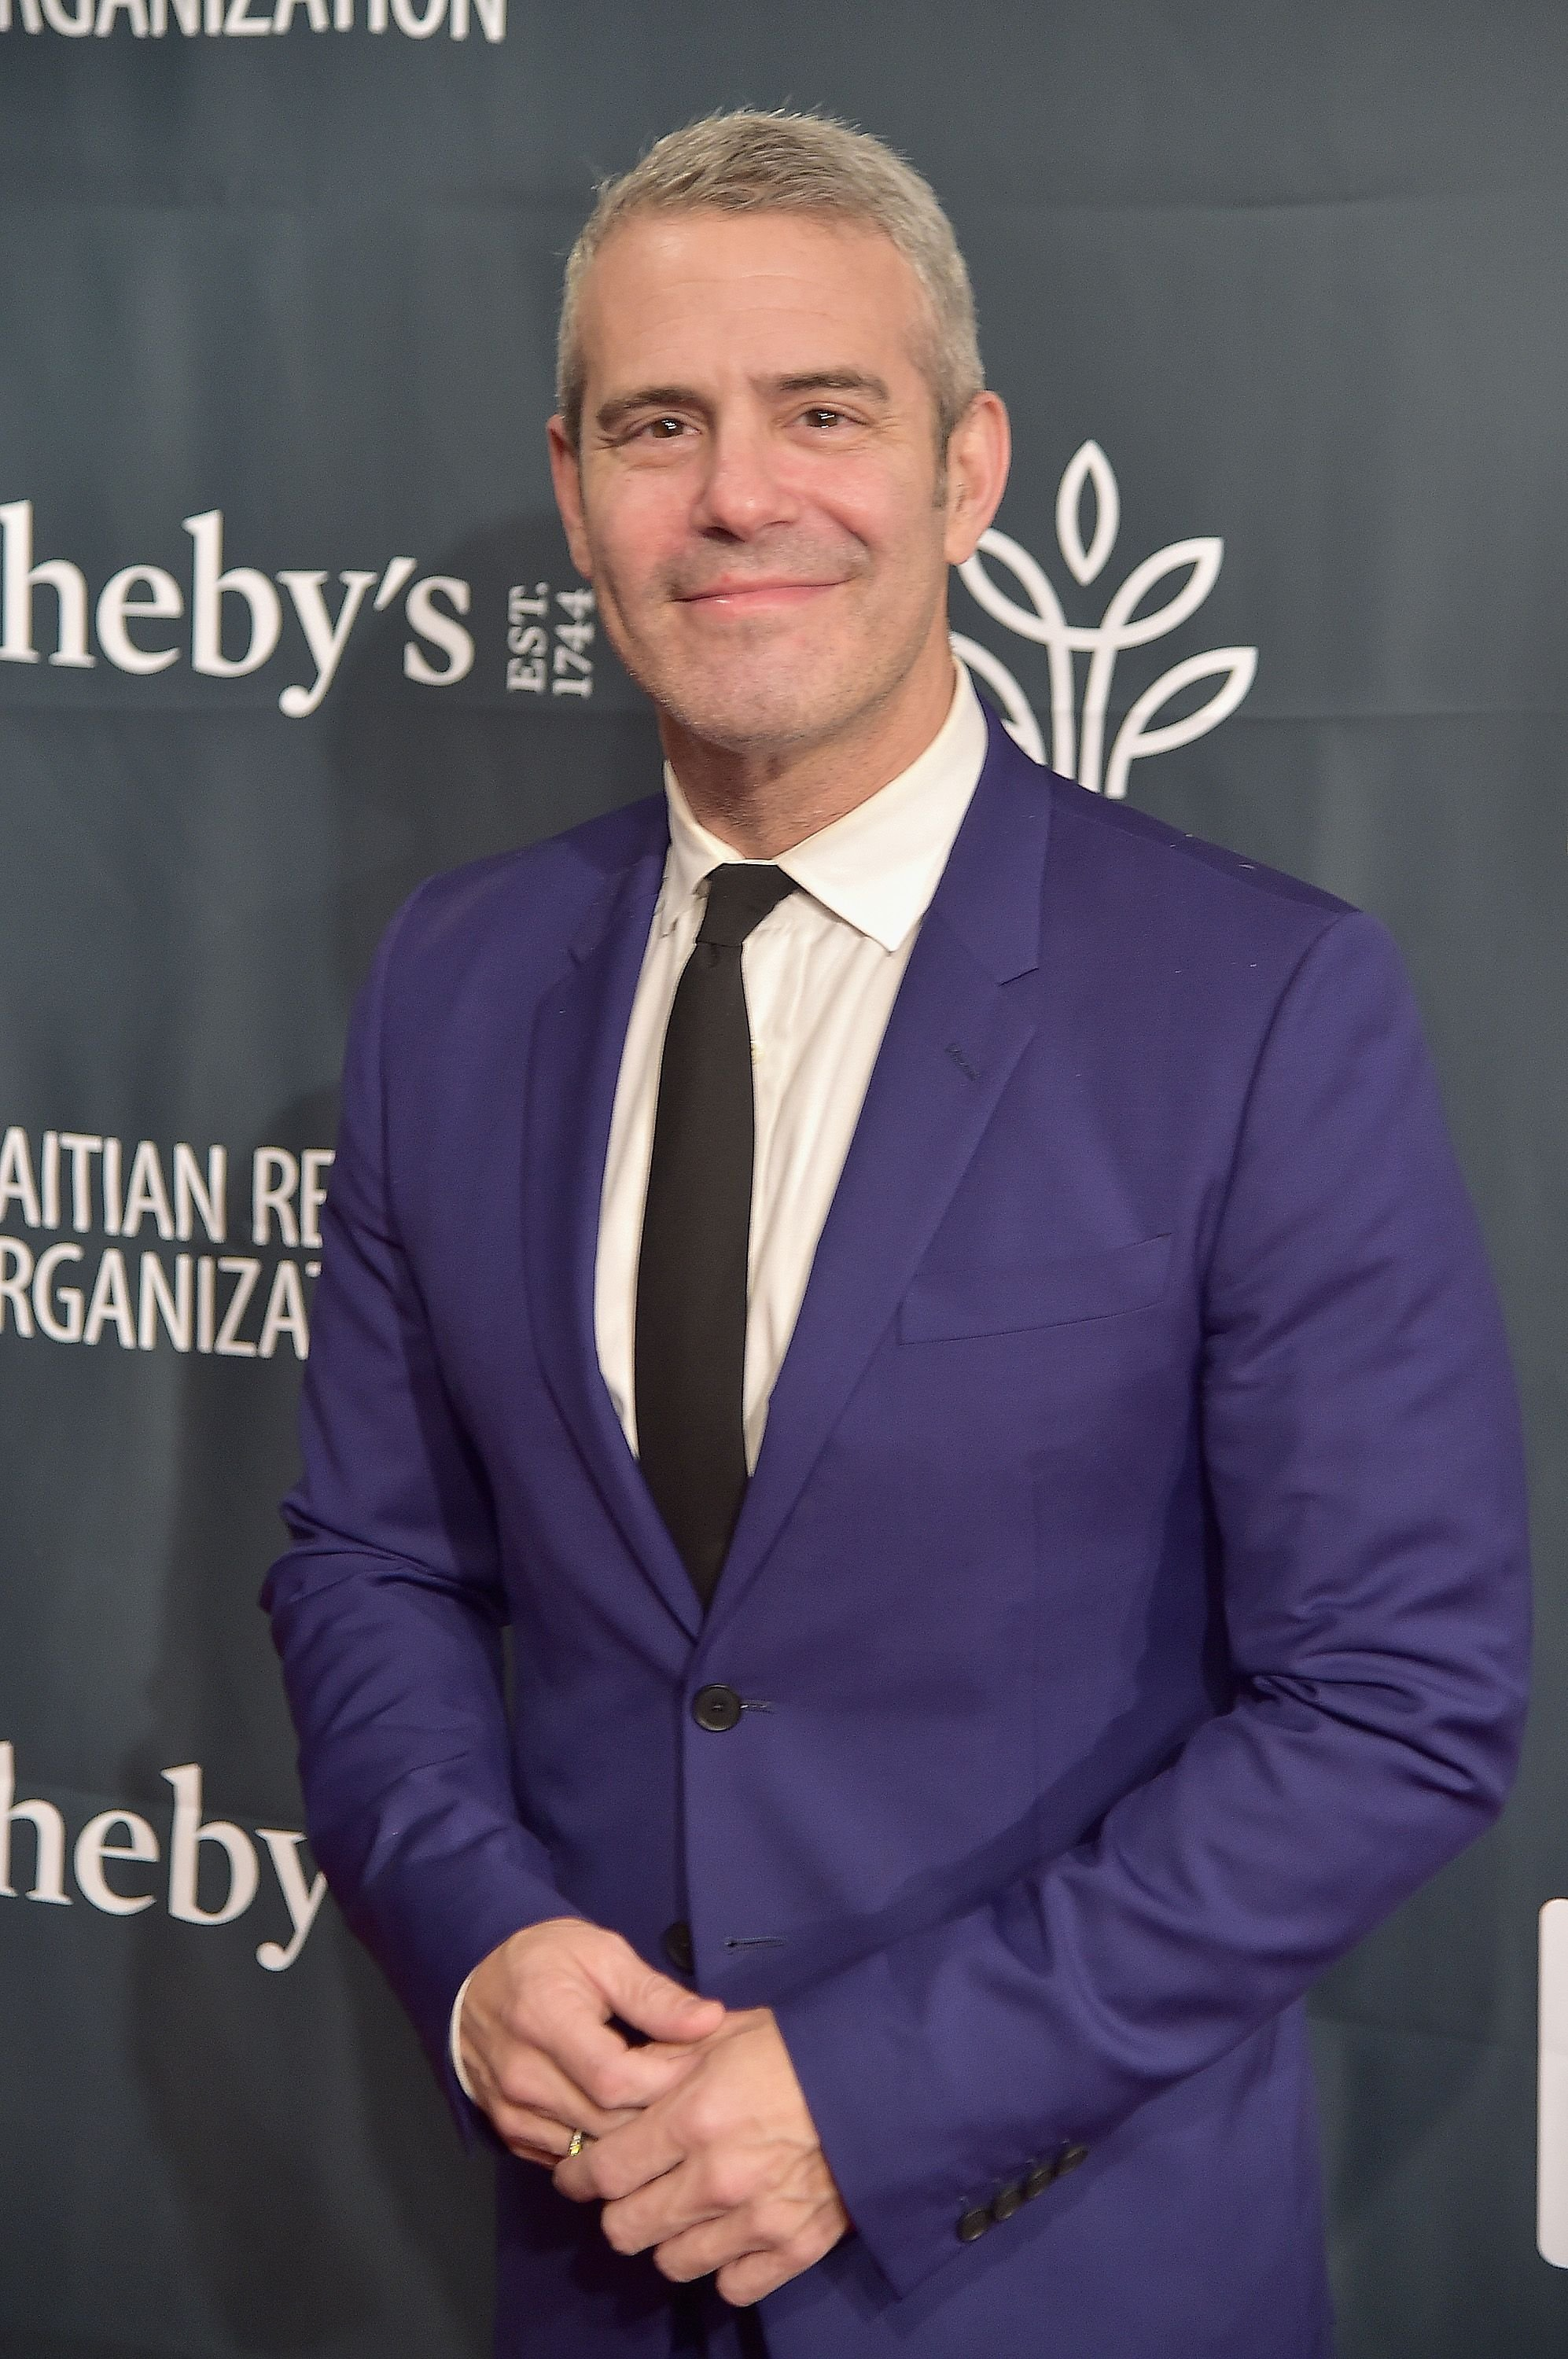 Andy Cohen at Sean Penn & Friends HAITI TAKES ROOT: A Benefit Dinner & Auction to Reforest & Rebuild Haiti to Support J/P Haitian Relief Organization at Sotheby's on May 5, 2017 | Photo: Getty Images